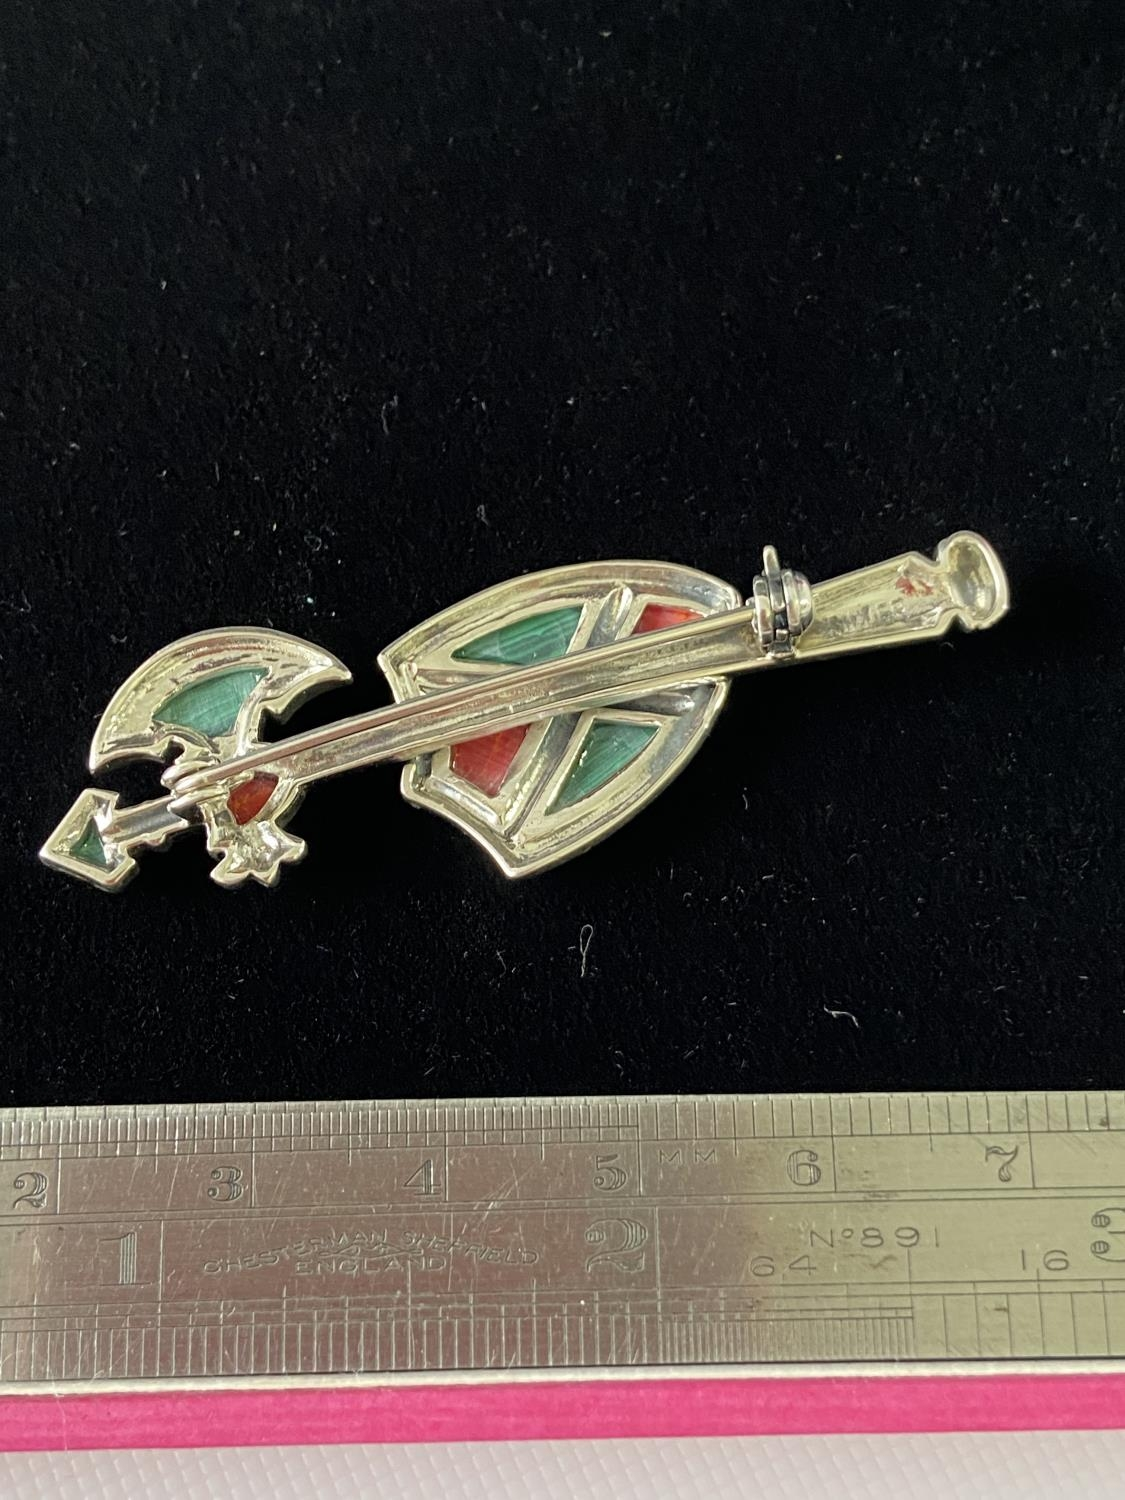 A Silver and malachite arrow shaped brooch. [5.3cm in length] - Image 6 of 6